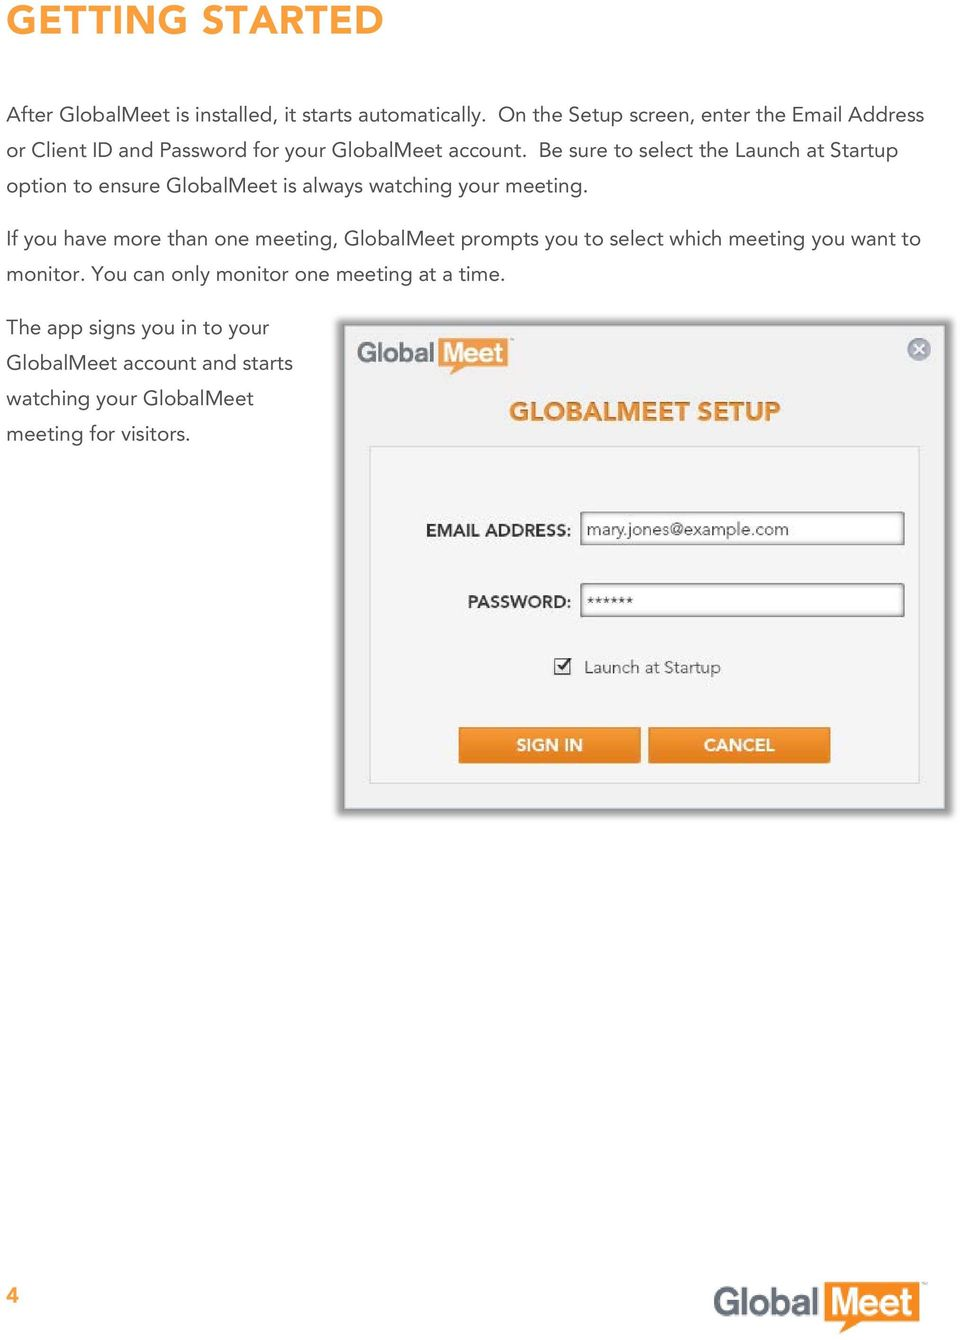 Be sure to select the Launch at Startup option to ensure GlobalMeet is always watching your meeting.